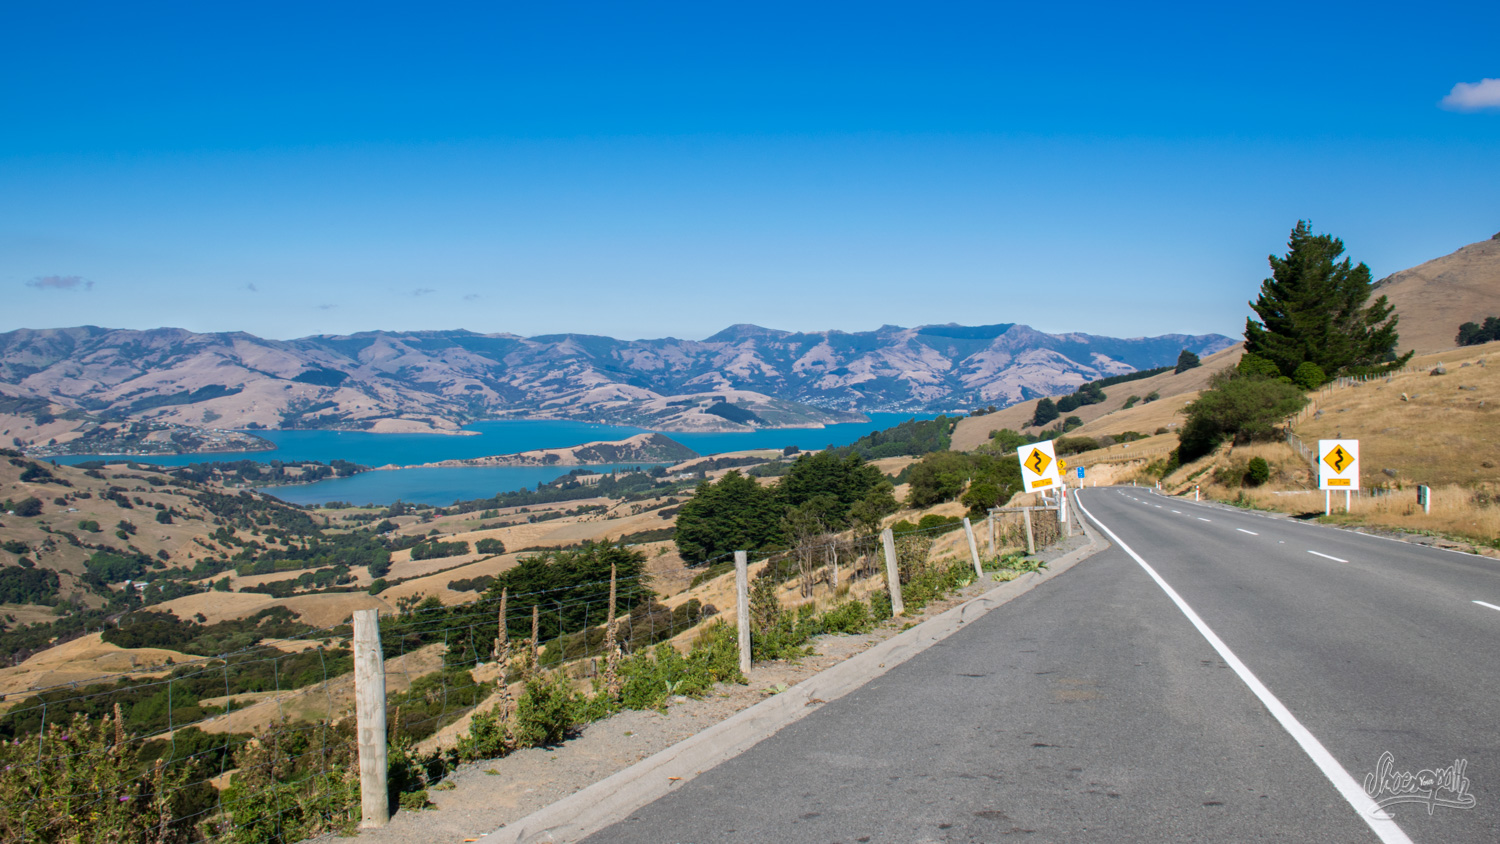 Akaroa, The « French » Village